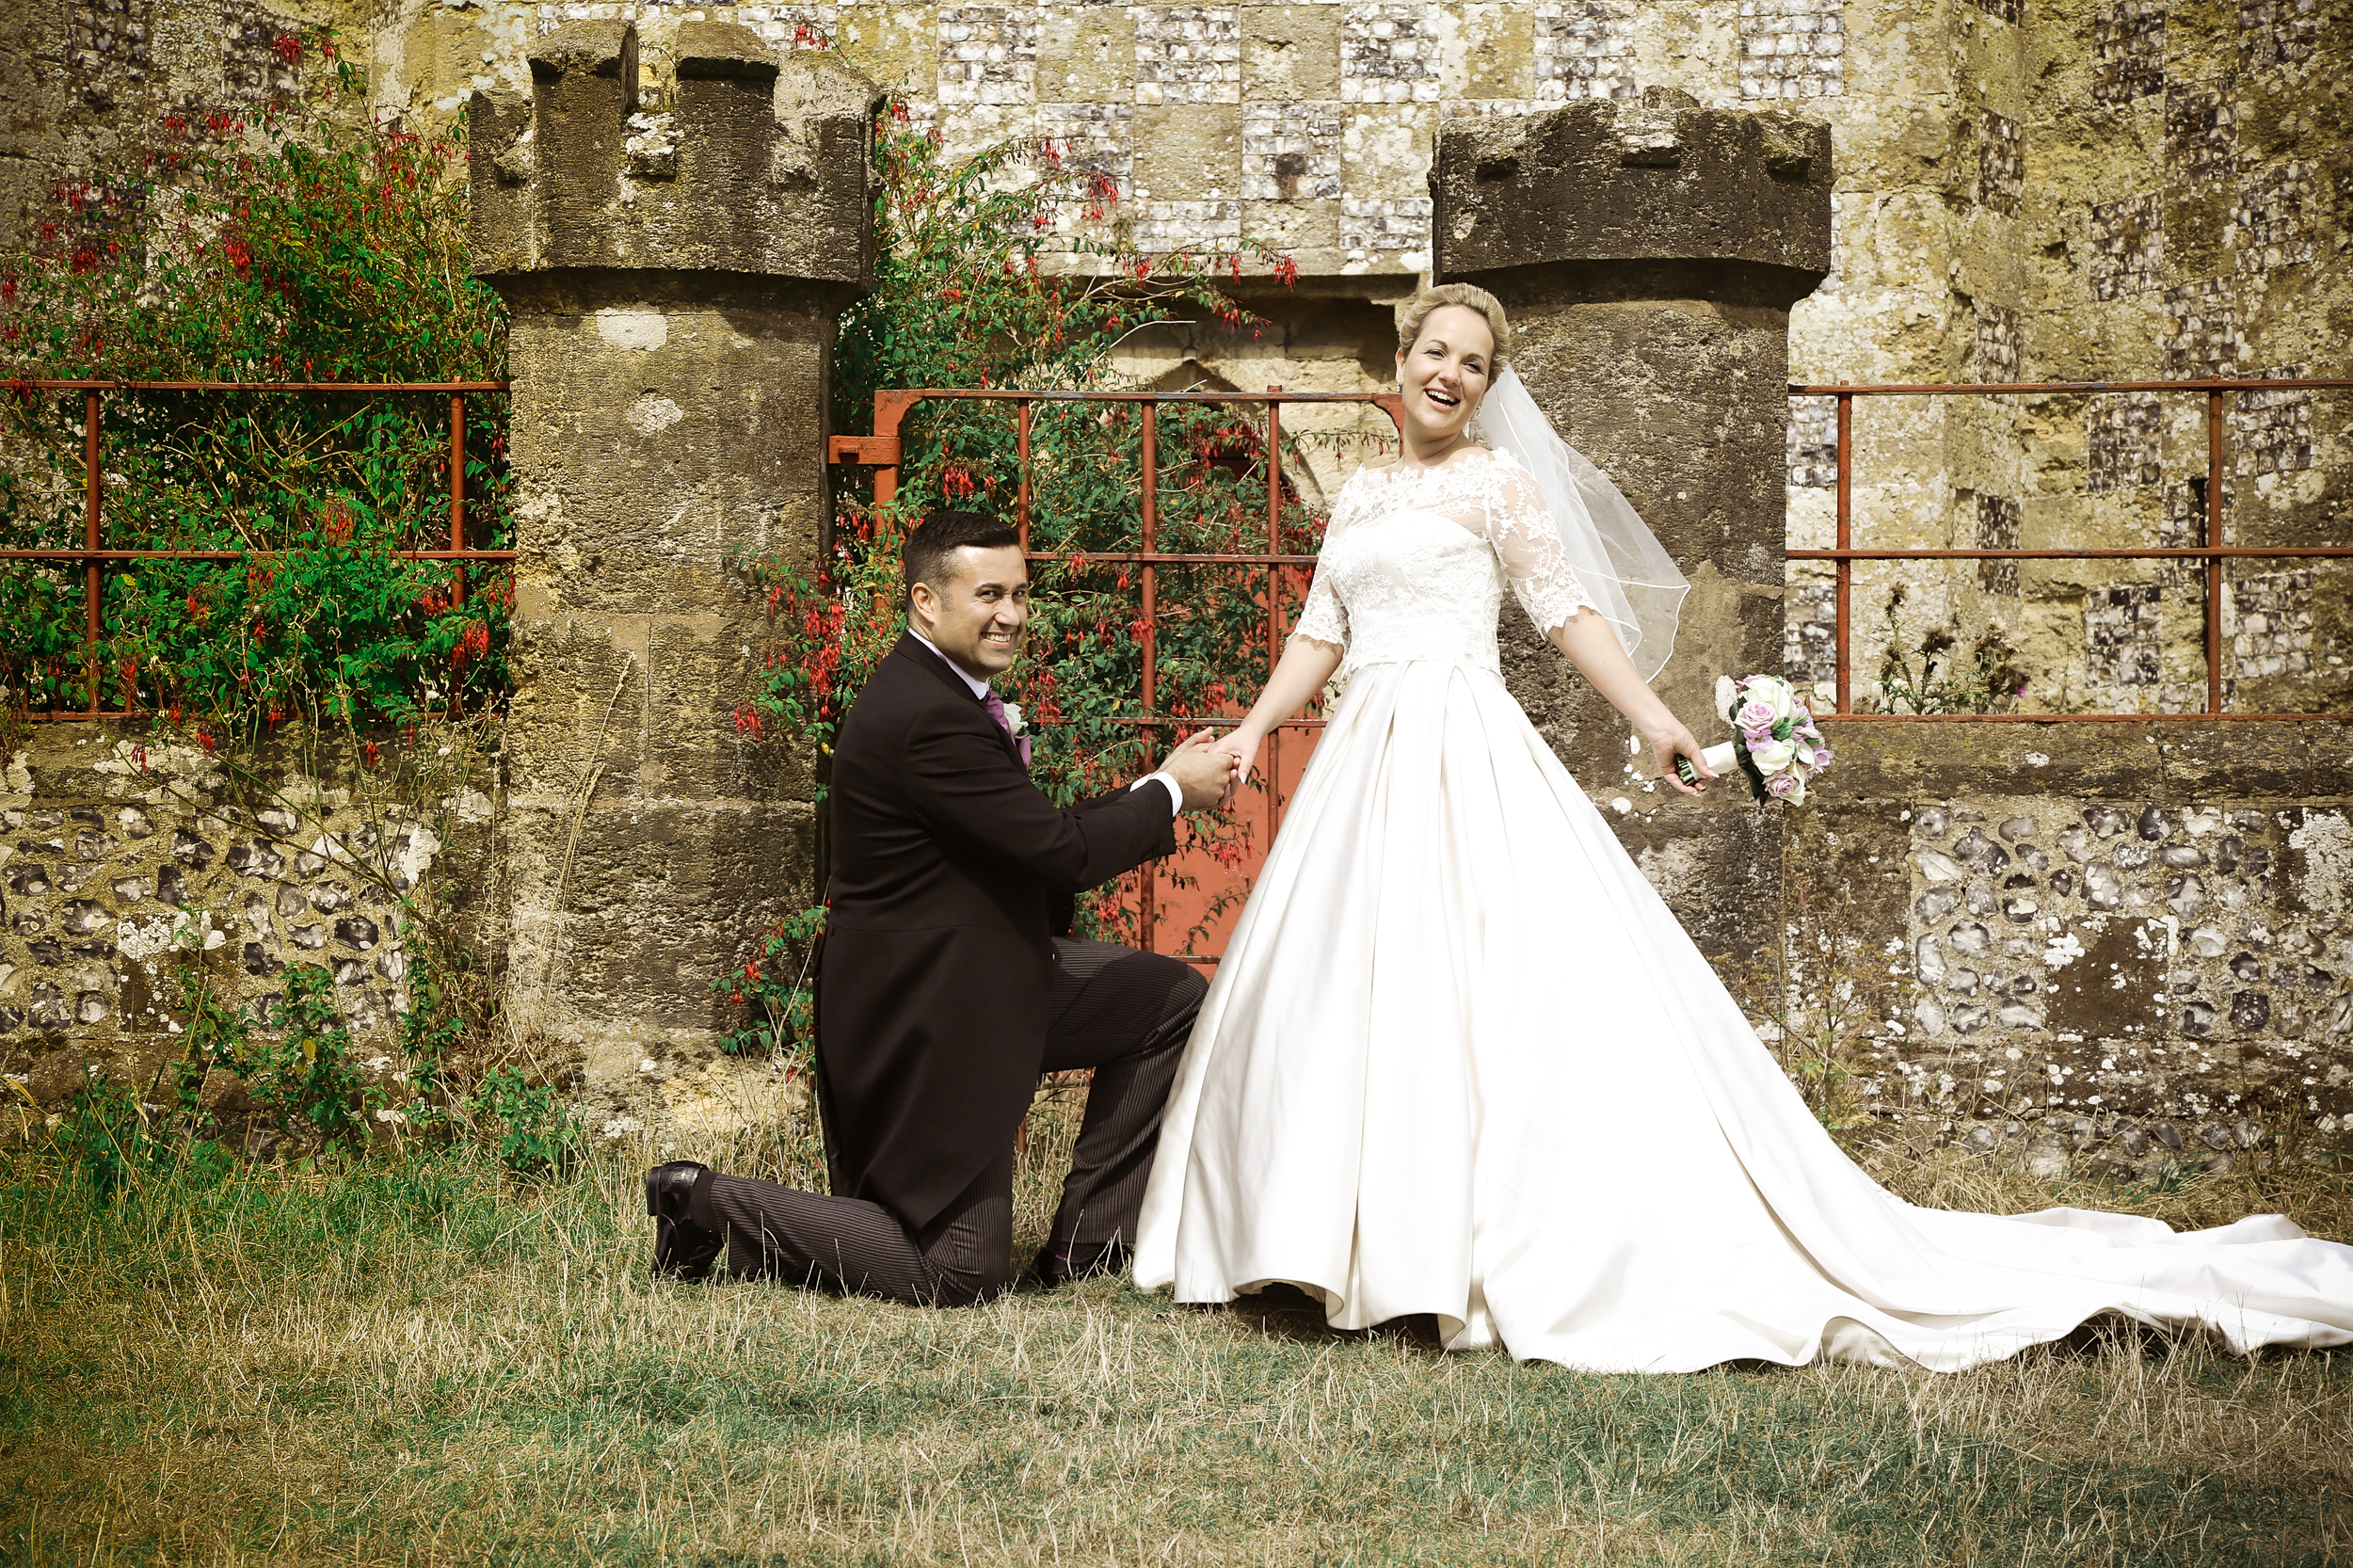 Pete & Alex - Arundel Estate & Arundel Catherdal